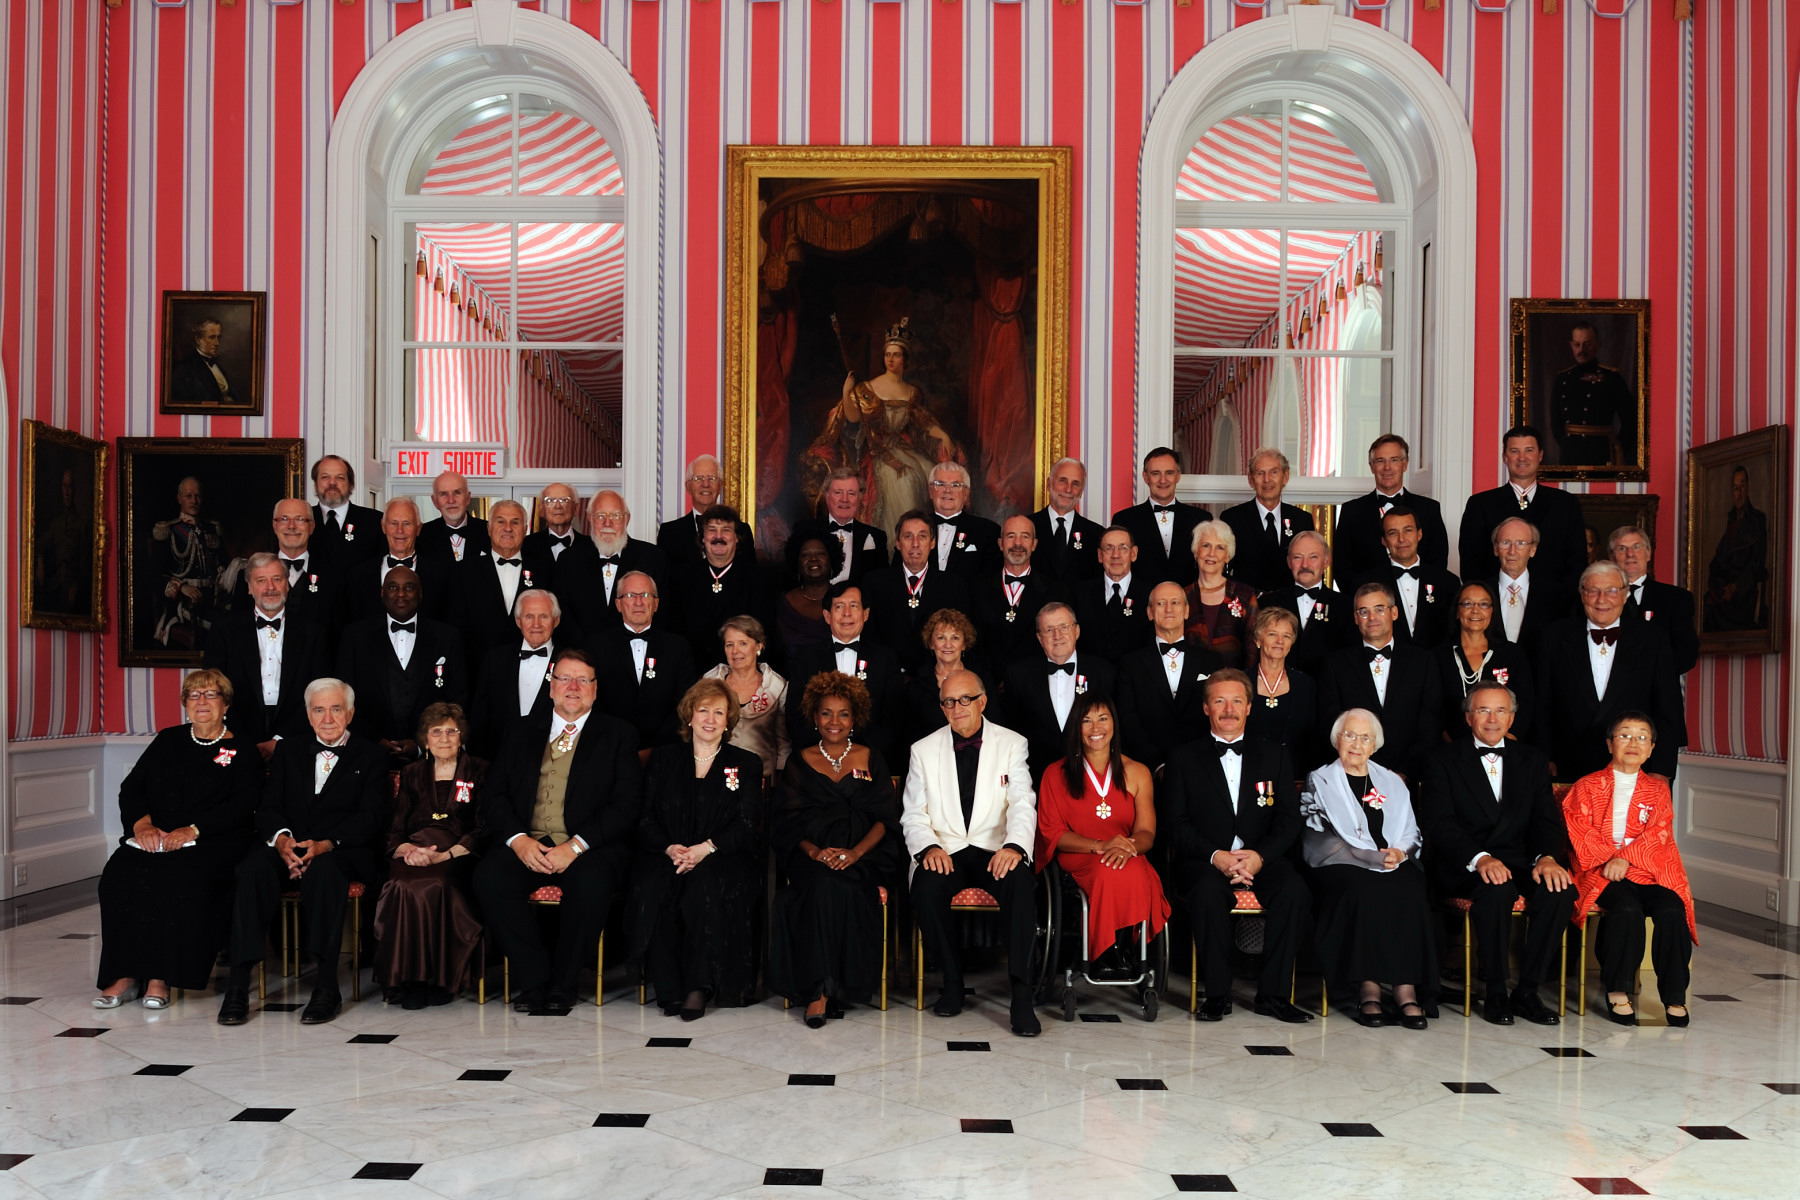 Their Excellencies are pictured with all the Members, Officers and Companions who were invested into the Order of Canada on September 3, 2010.